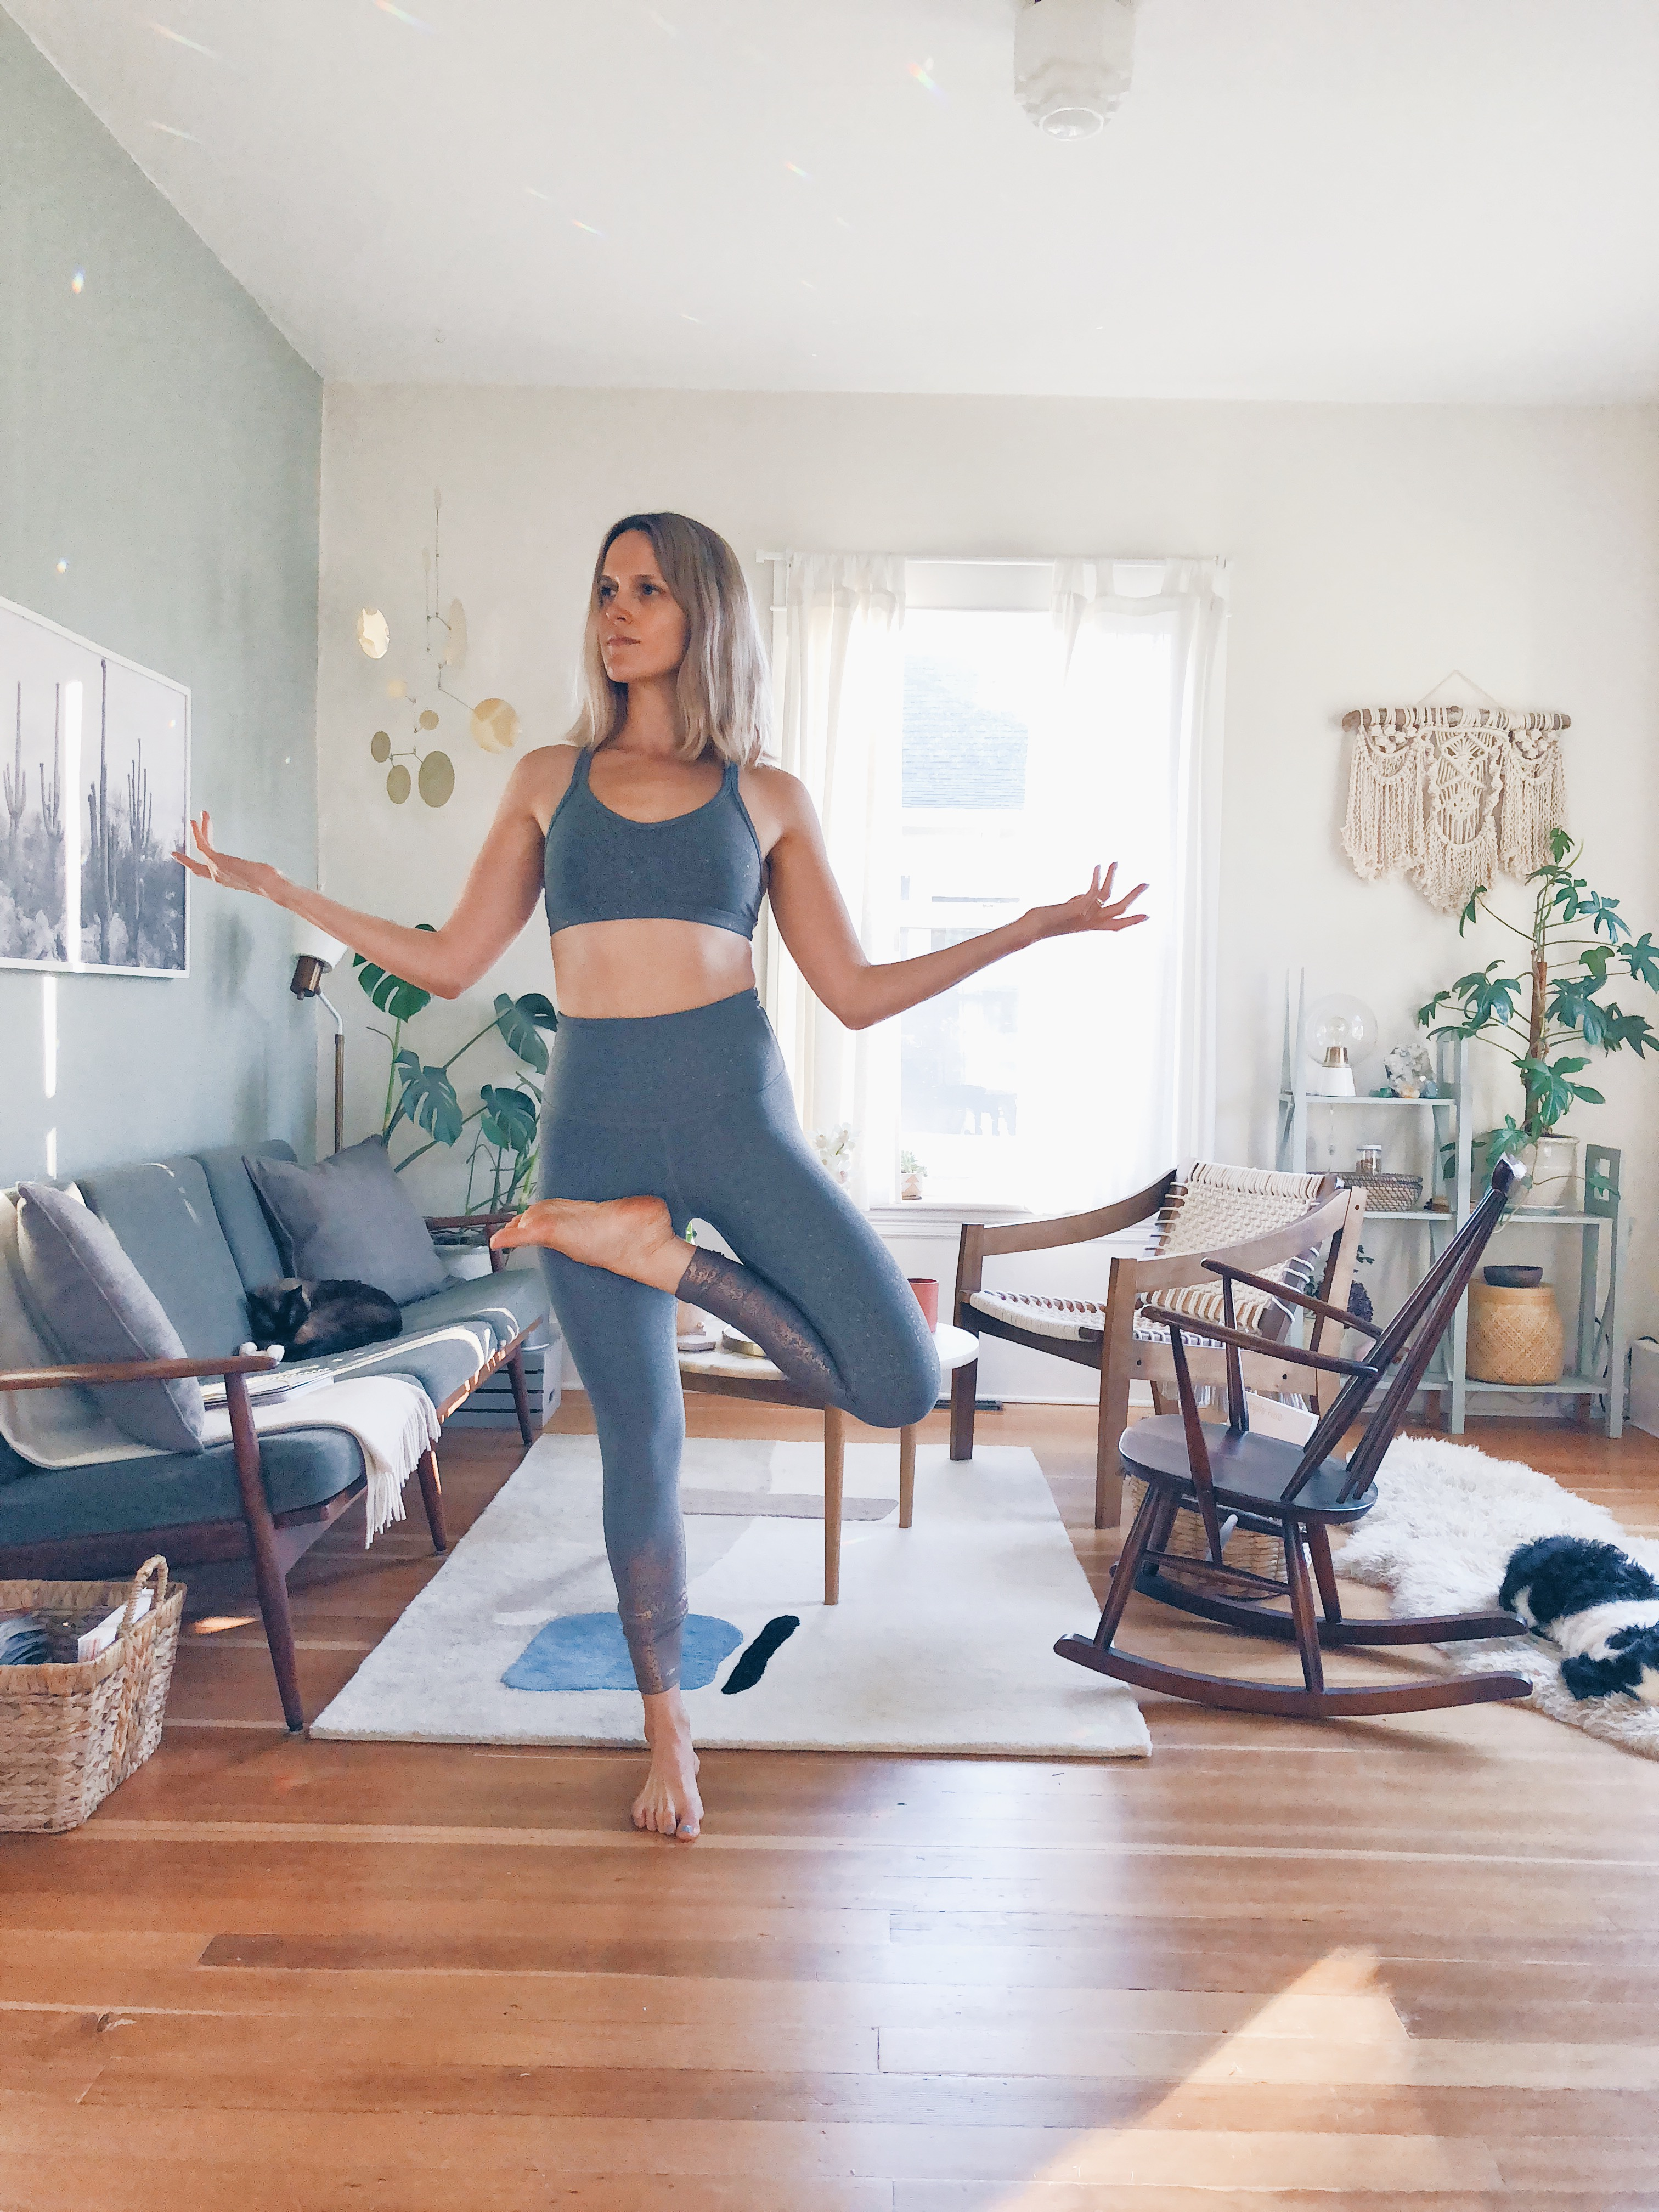 e291d8c07dd8 Try incorporating a 2-3 of the following self-care rituals into your daily  routine this month.